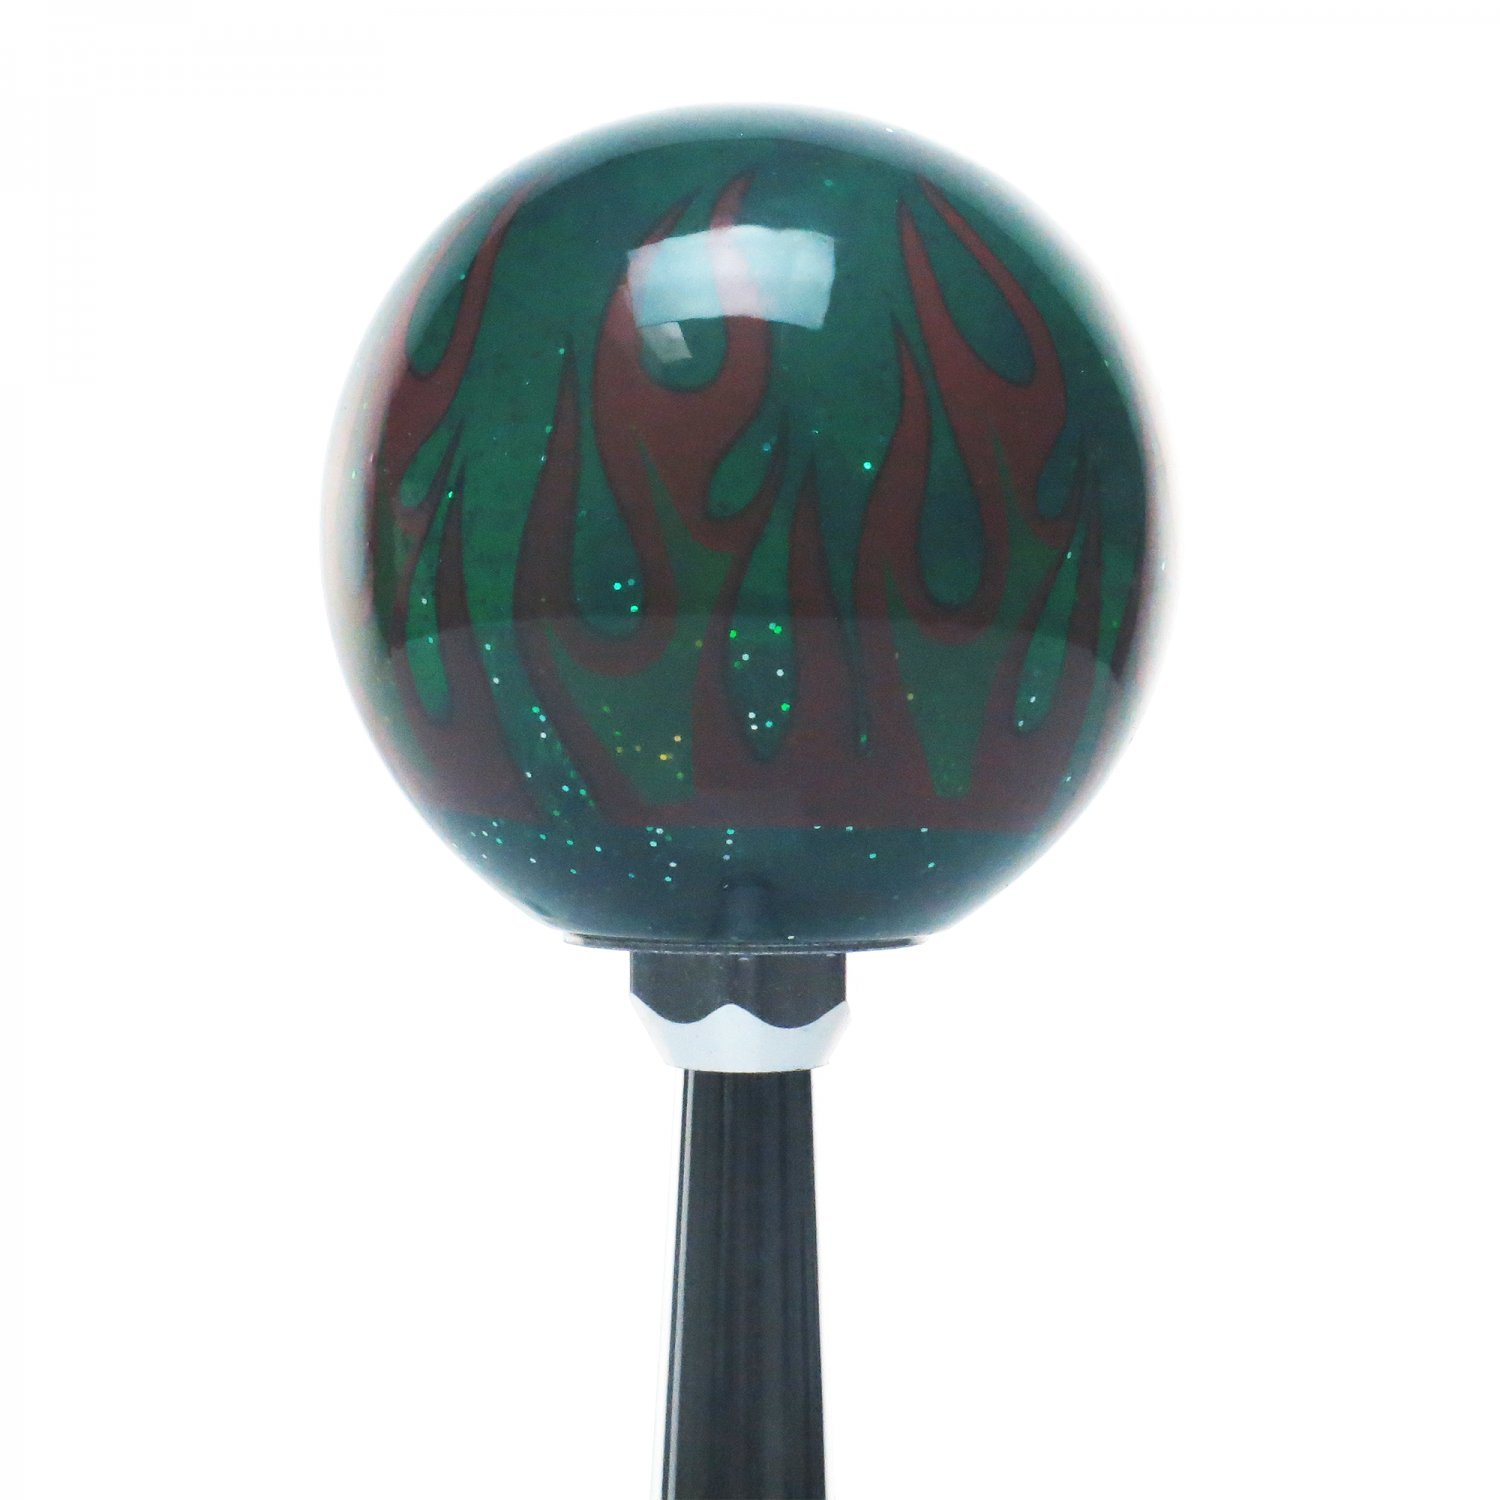 Orange Jack Zippered Mouth American Shifter 260677 Green Flame Metal Flake Shift Knob with M16 x 1.5 Insert